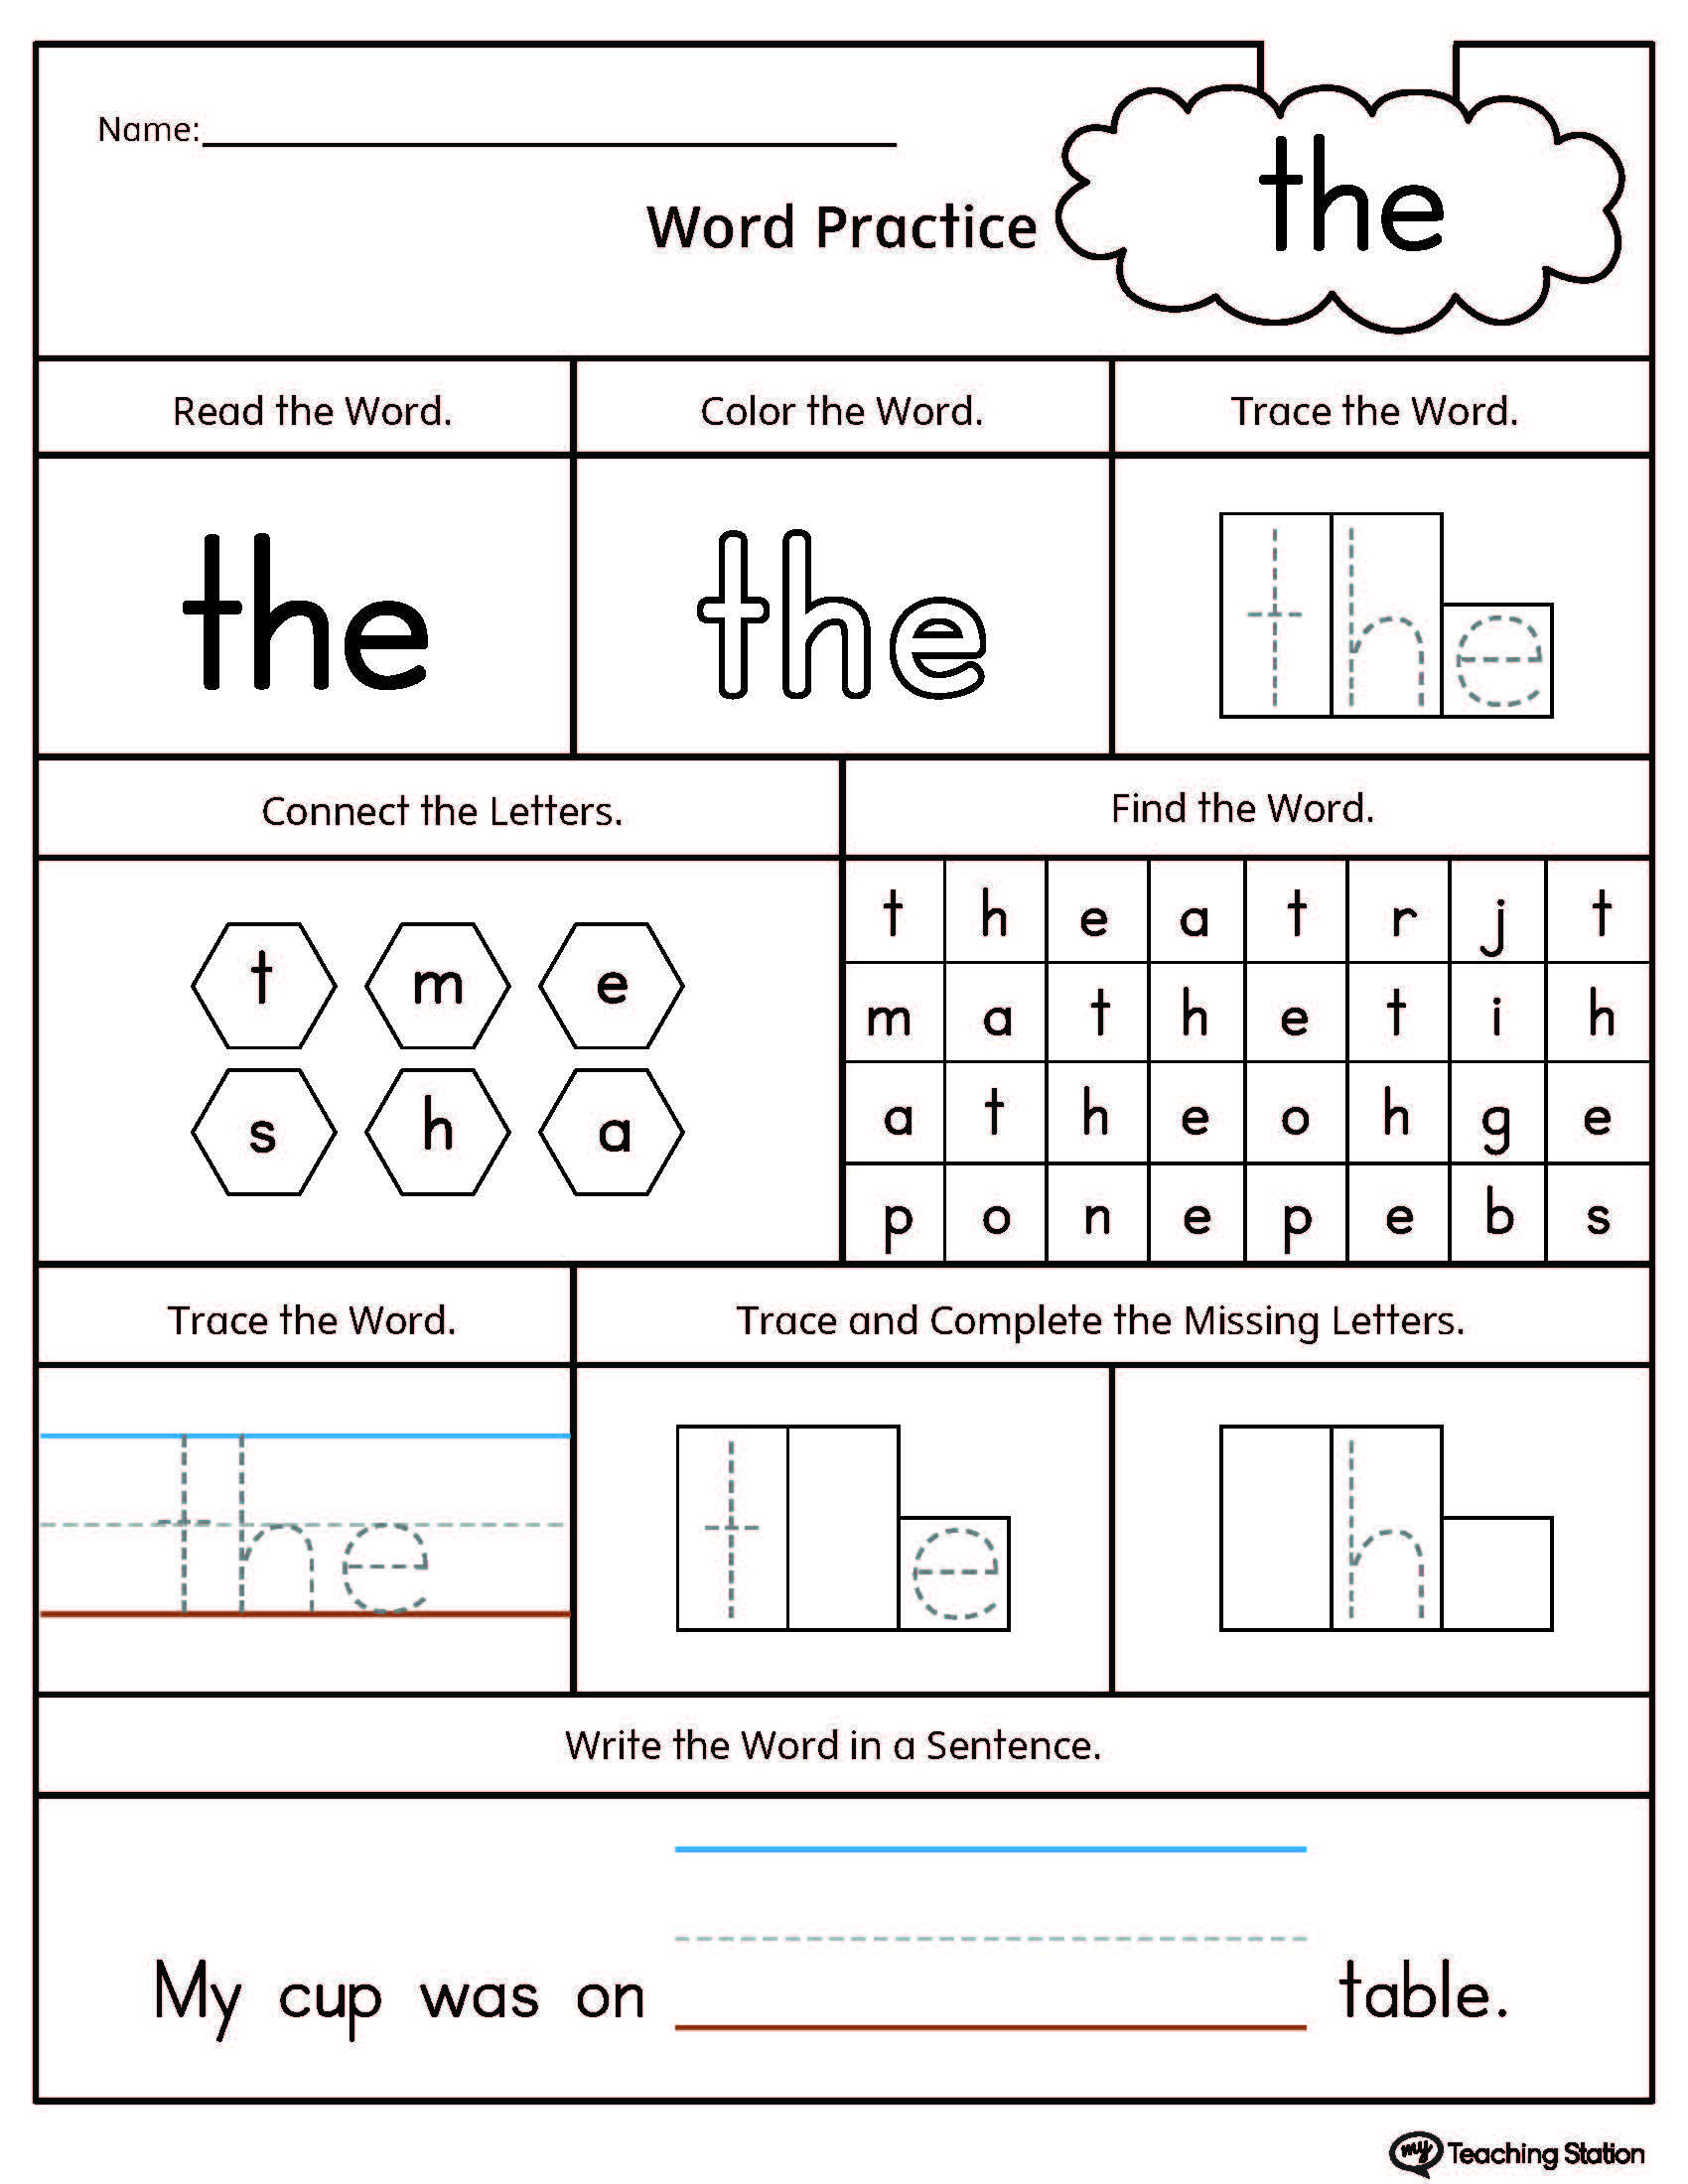 Worksheets Sight Word Worksheets sight word the printable worksheet worksheets worksheet